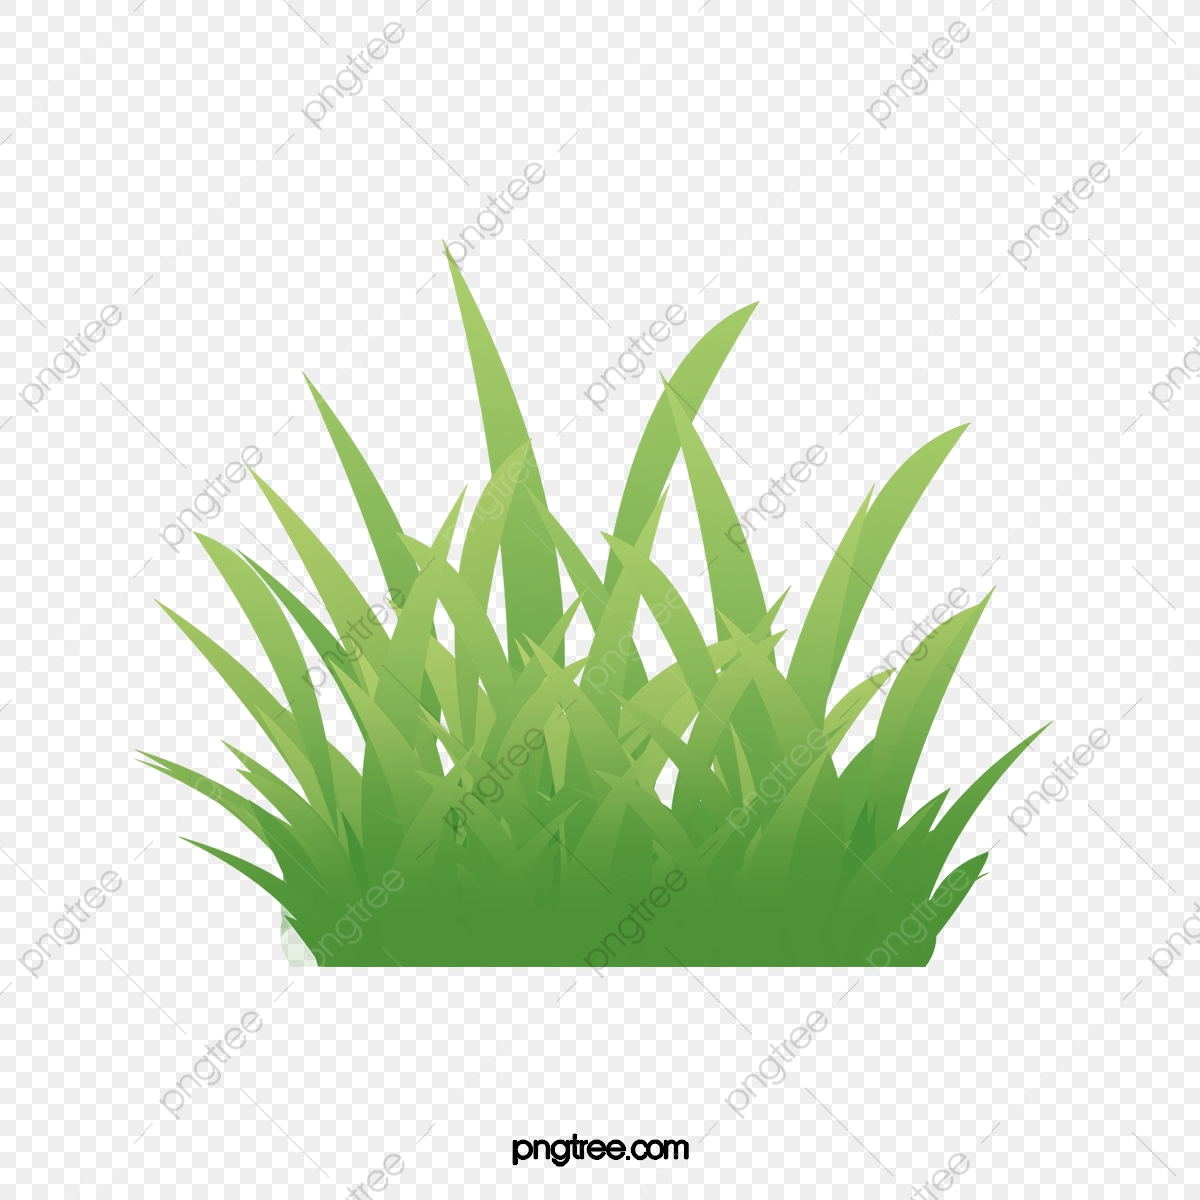 Cartoon Grass Png Vector Psd And Clipart With Transparent